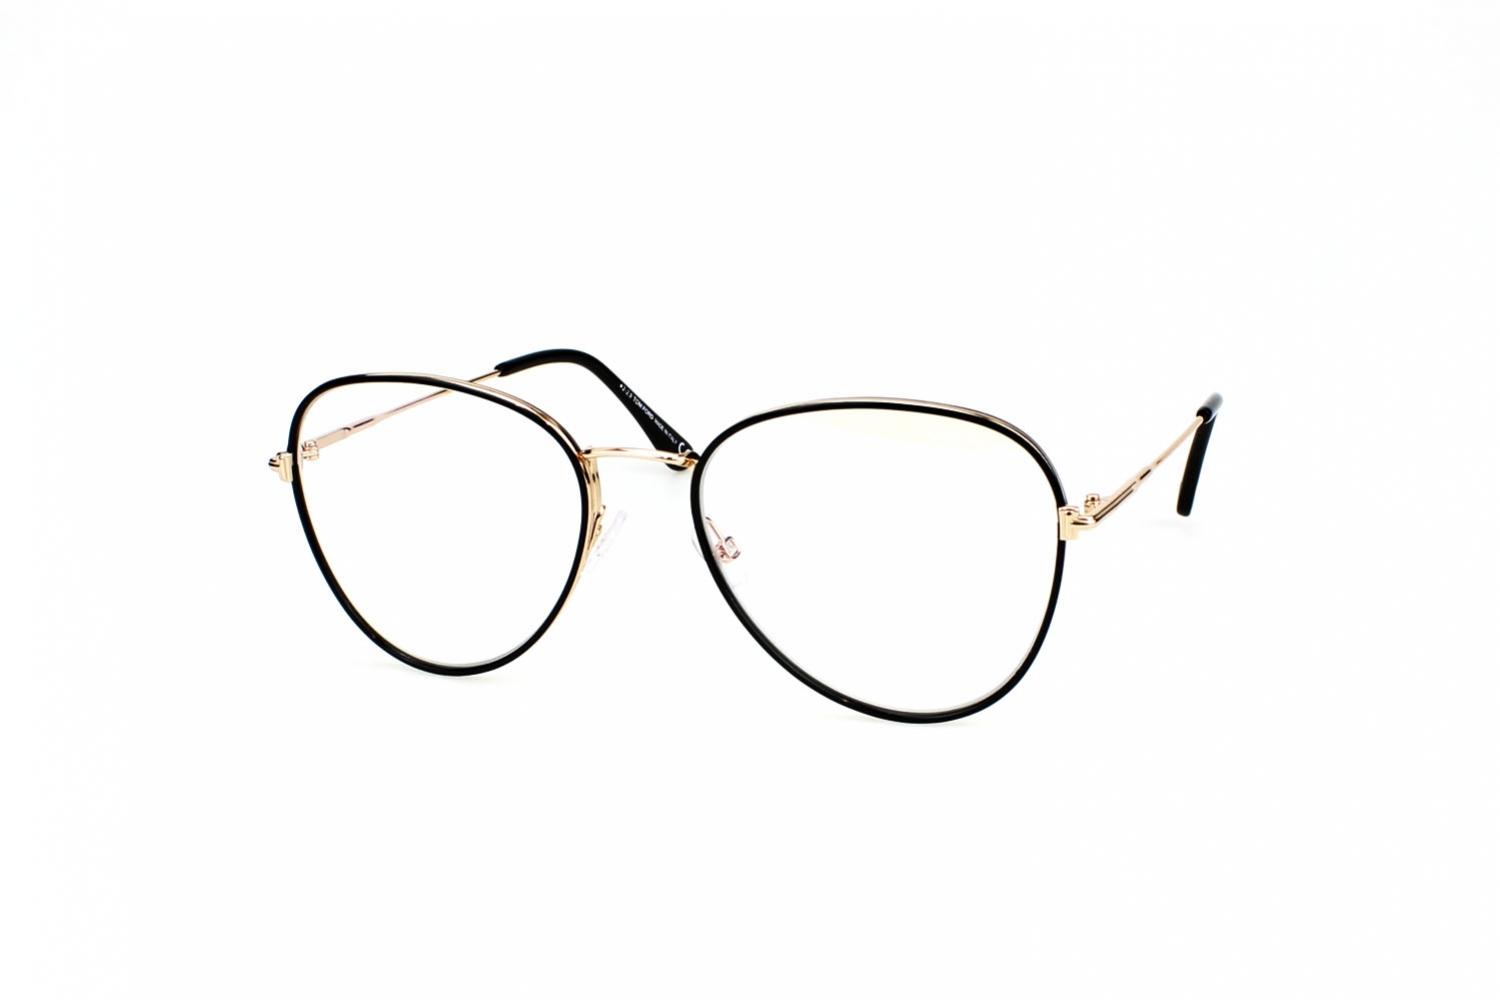 Tom Ford TF 5631 B 001 54